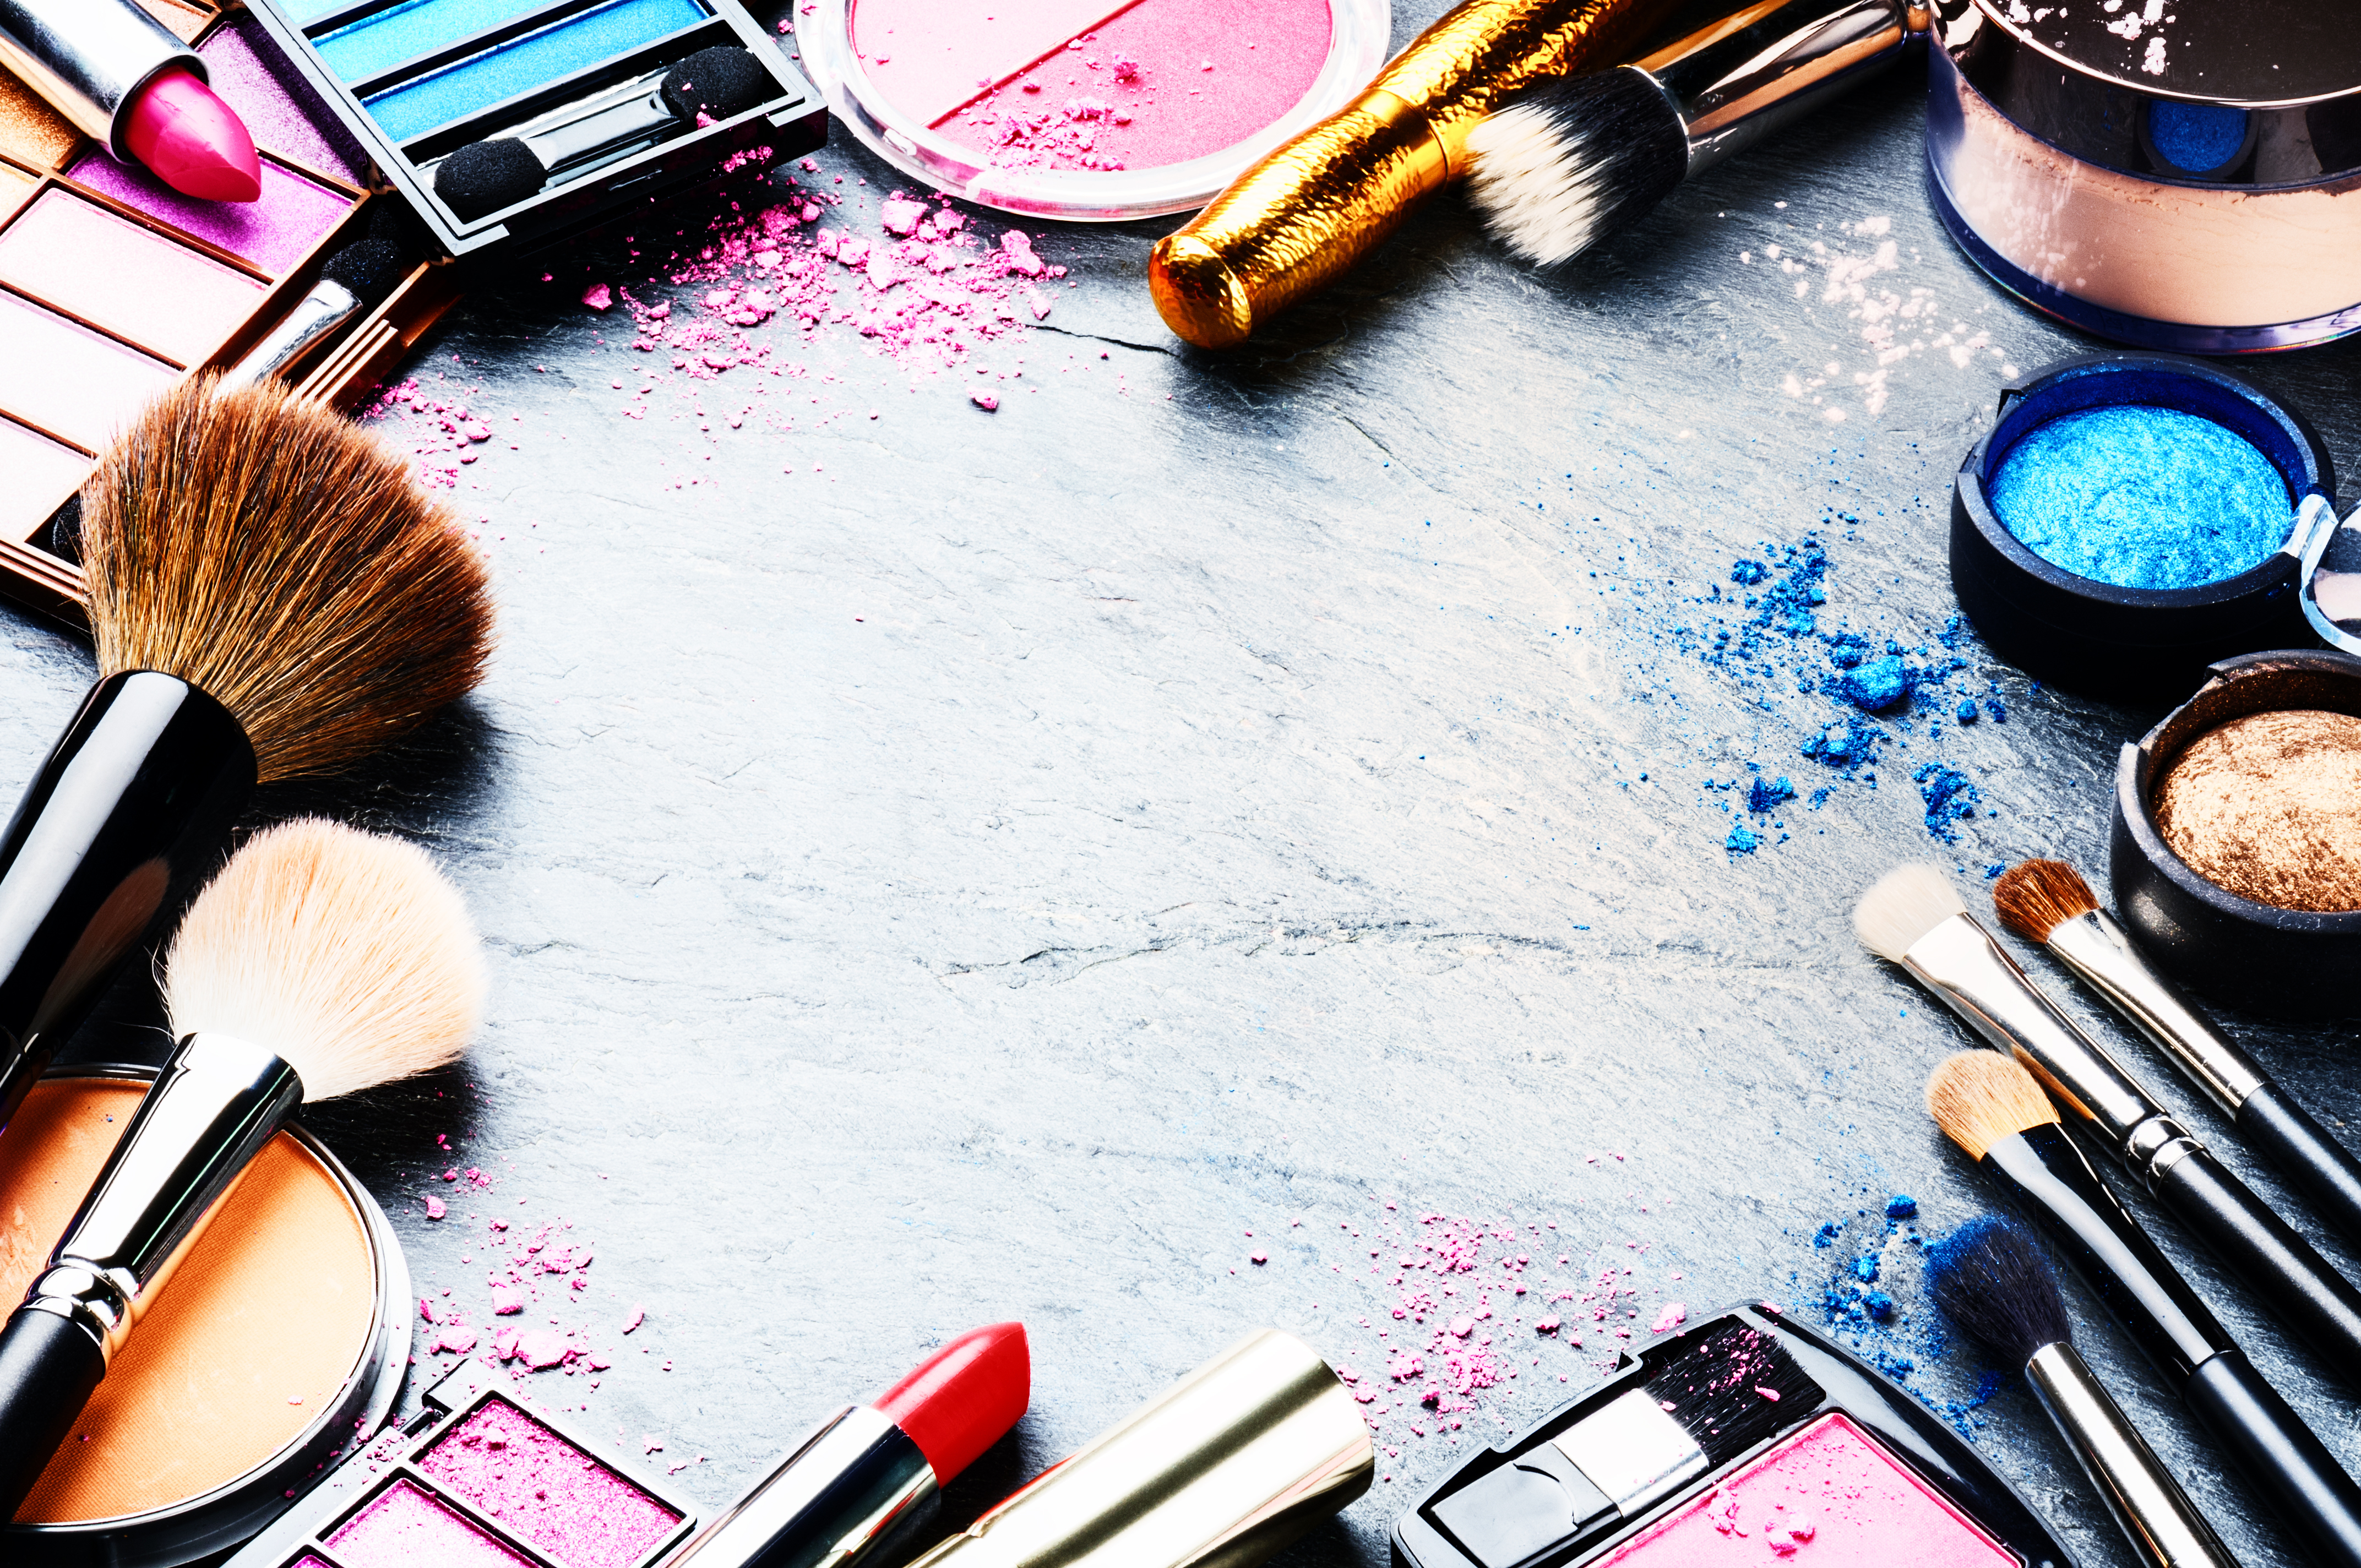 Indulge in Amazon Luxury Beauty items for less (for one day only!)